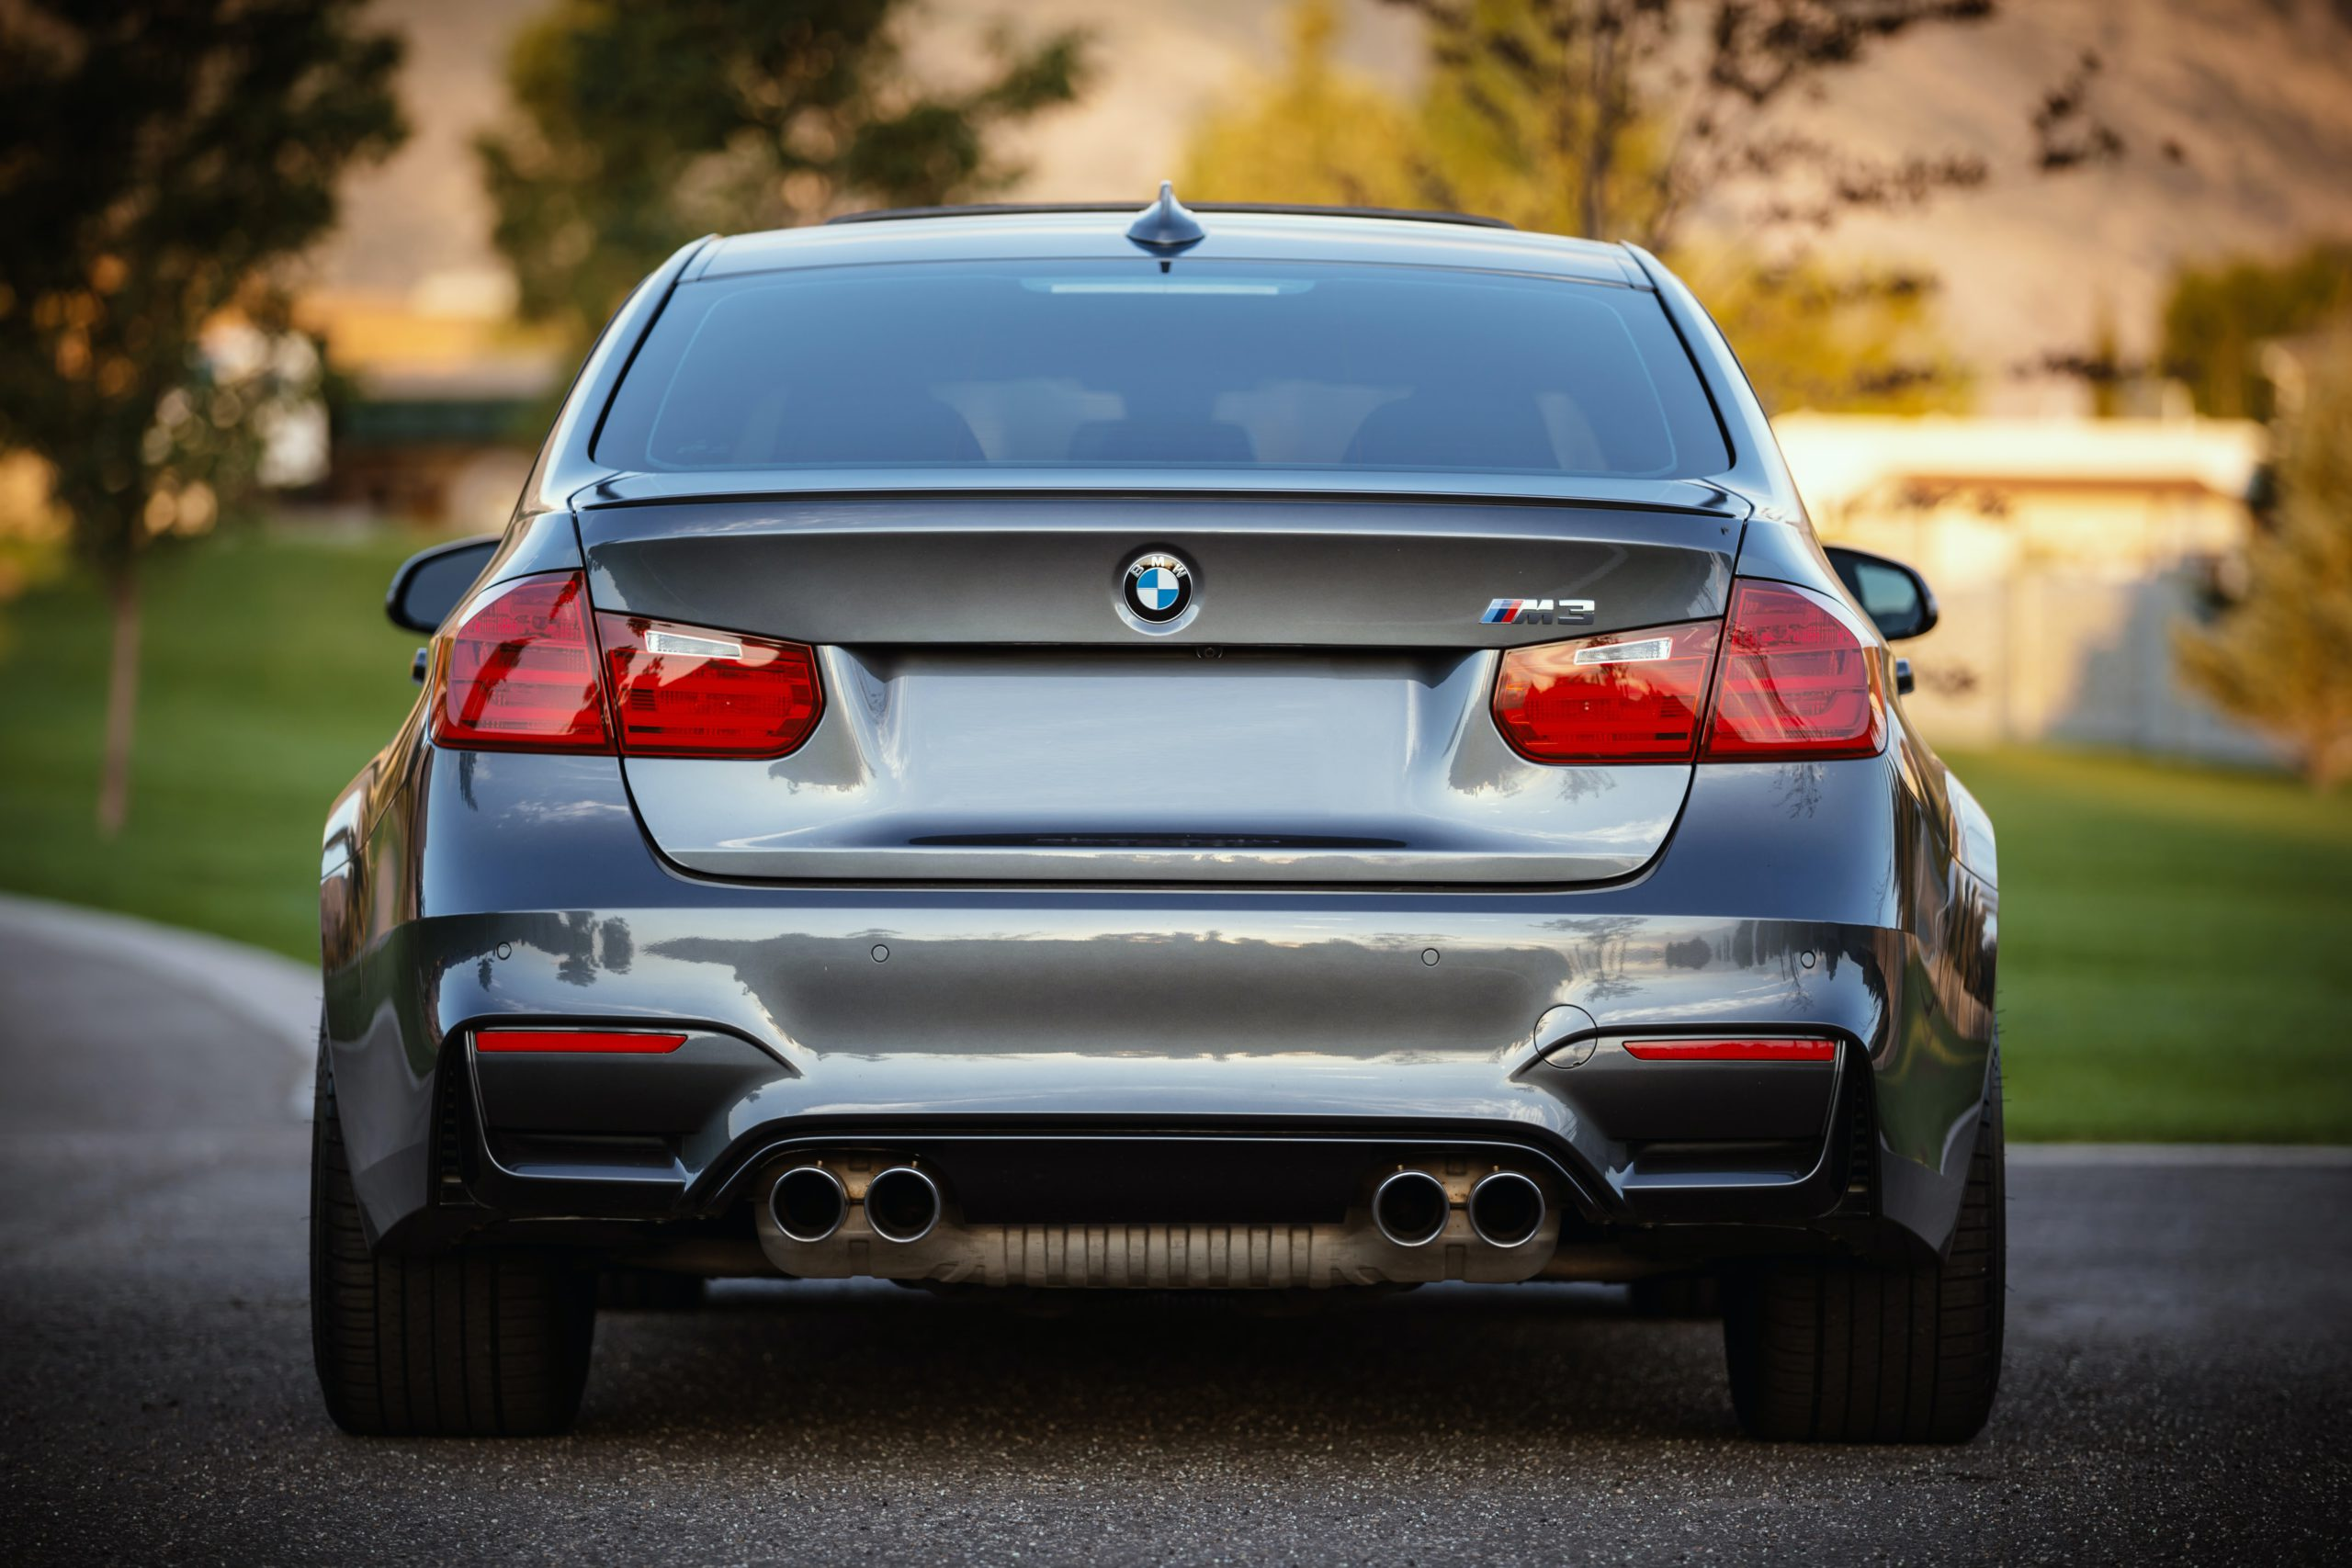 How Much Does A Replacement Exhaust Cost Fixter